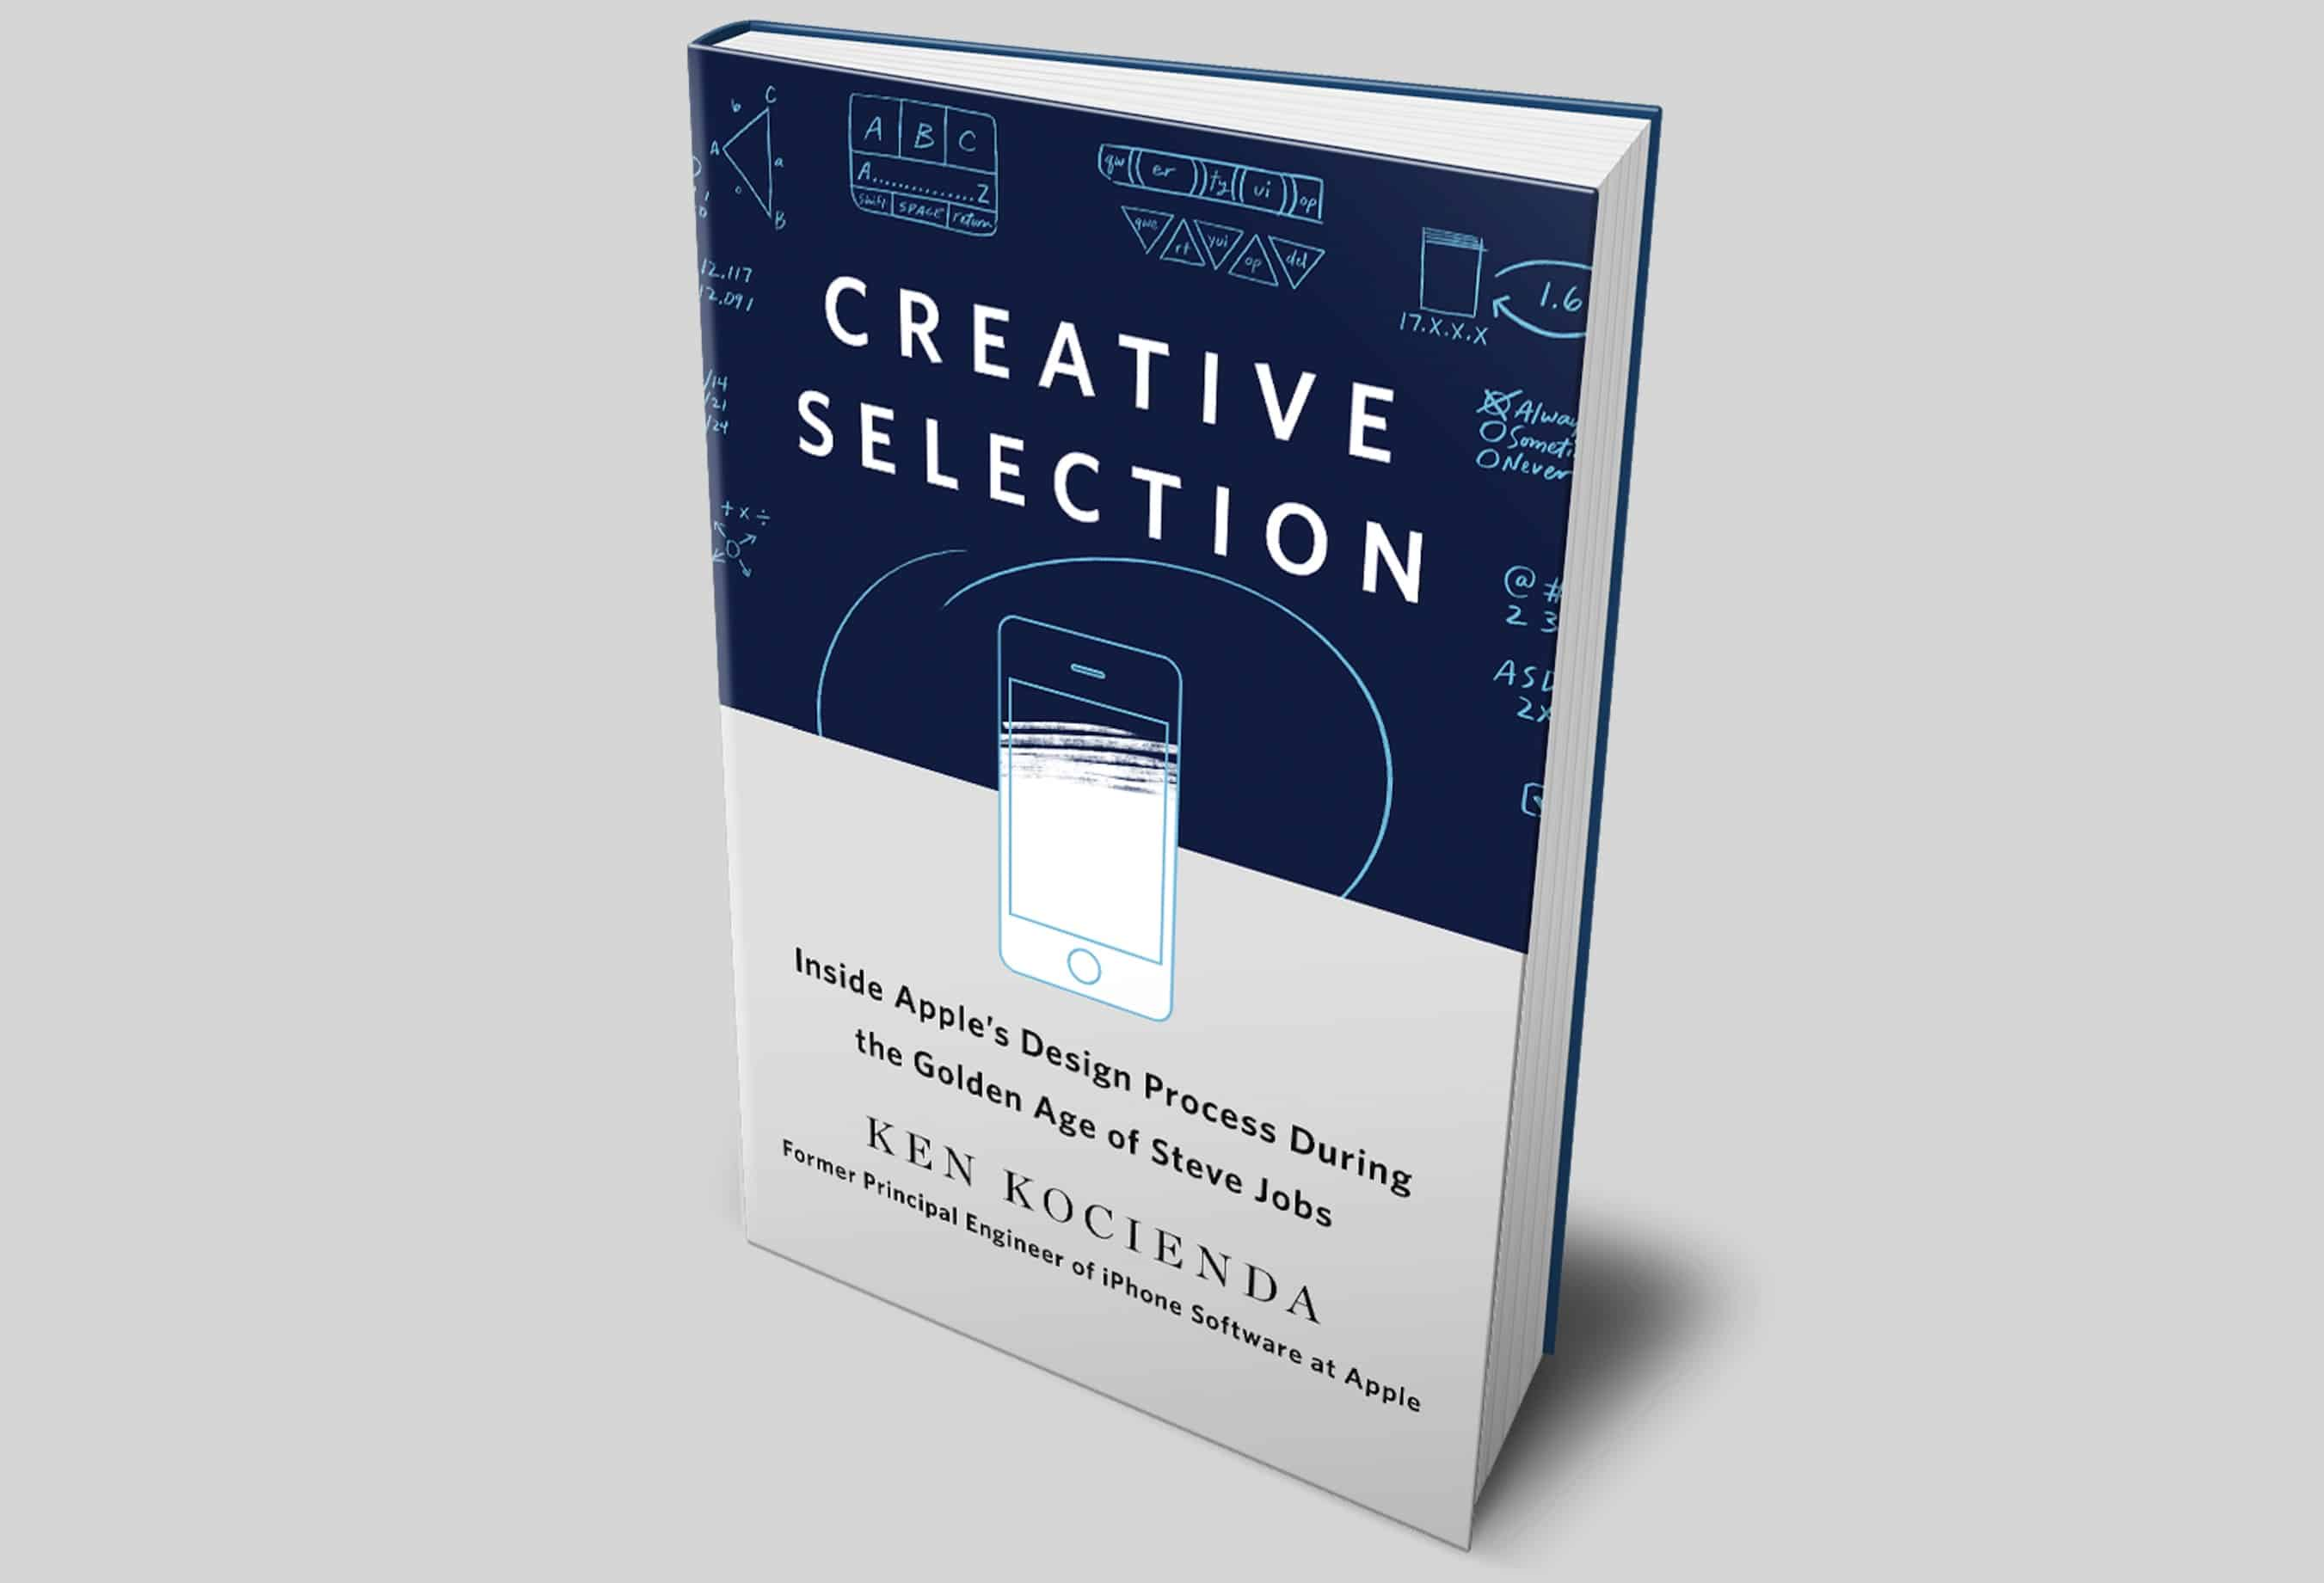 Ken Kocienda's book, <em>Creative Selection: Inside Apple's Design Process During the Golden Age of Stave Jobs.</em>